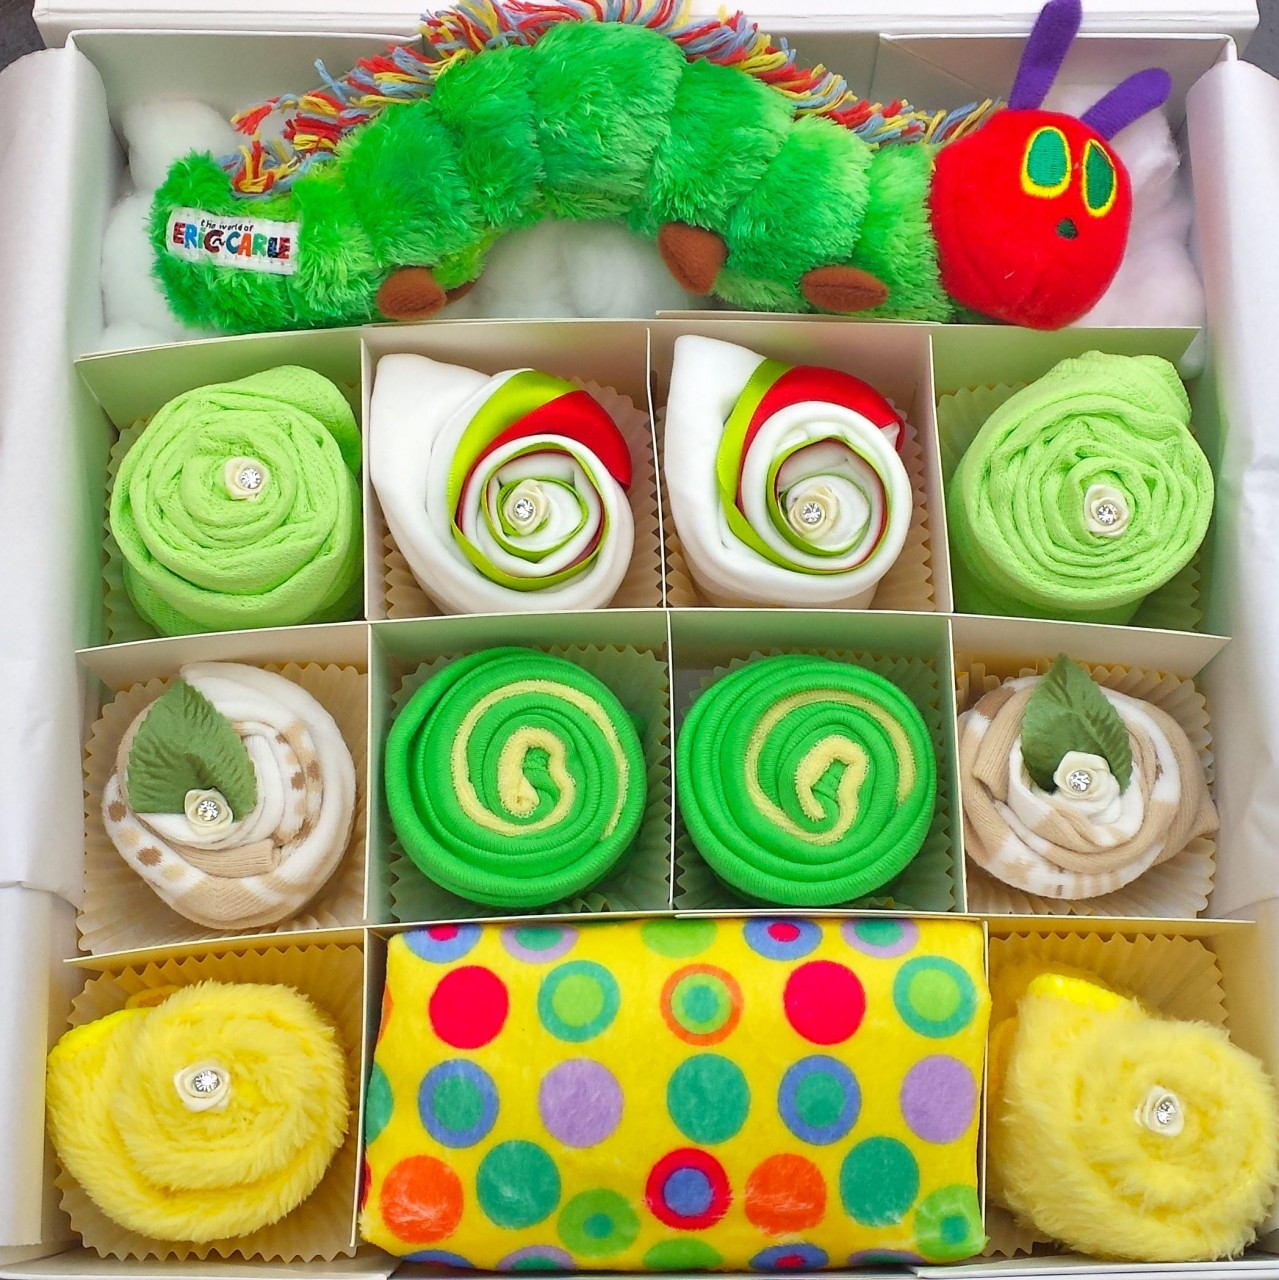 Very Hungry Caterpillar Wall Stickers Hungry Caterpillar Baby Clothing Cupcake Gift Set In 0 3